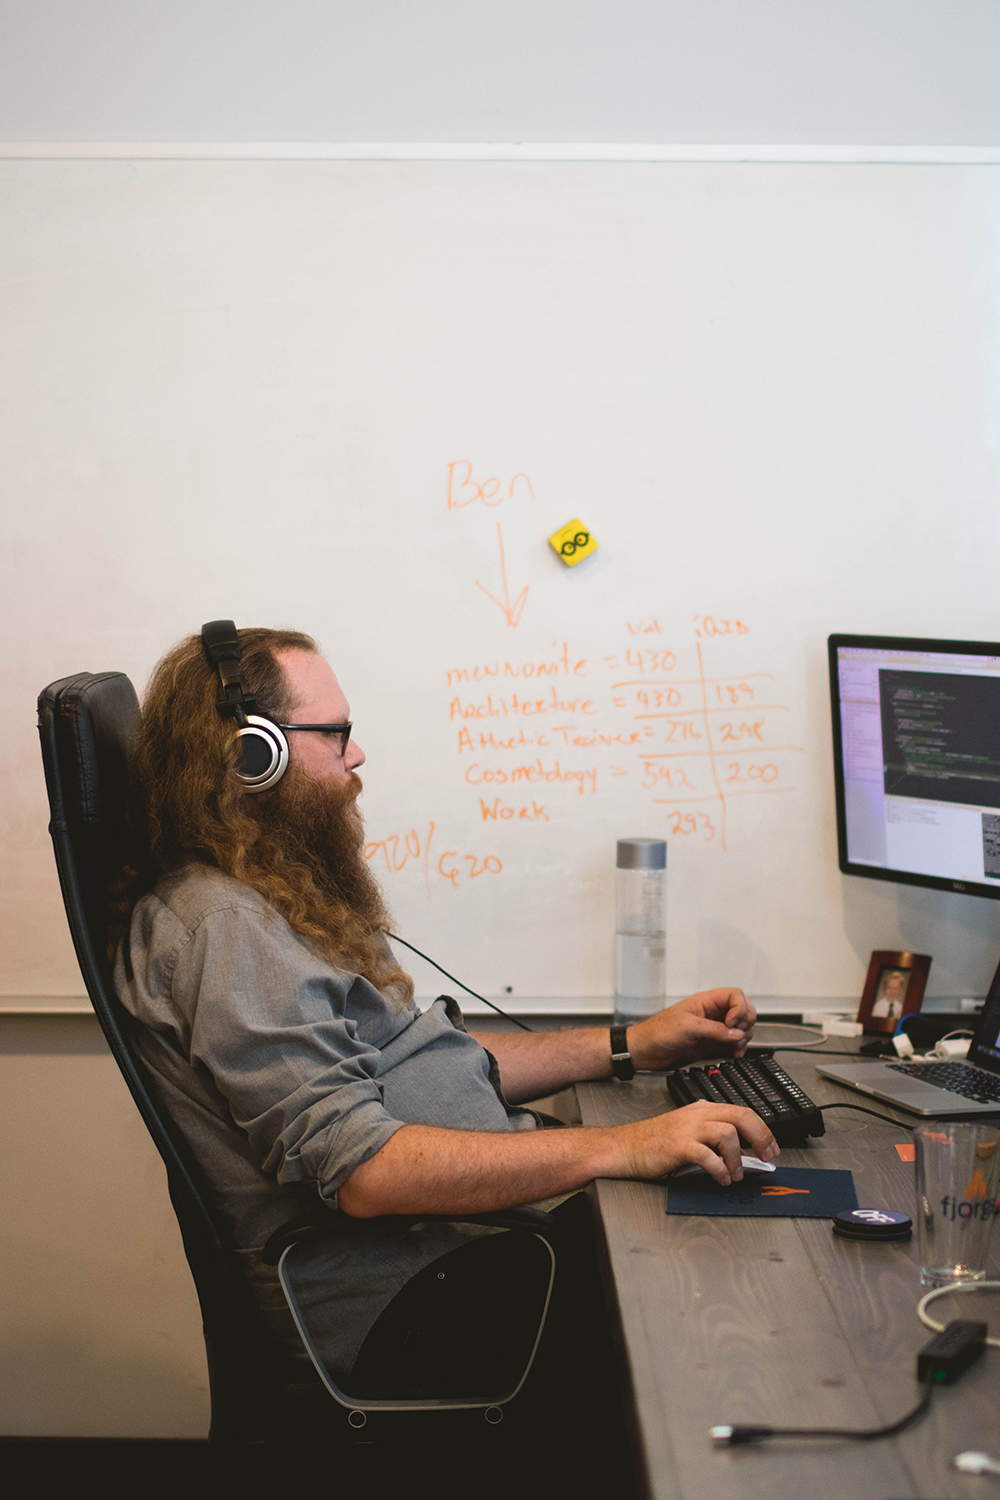 man sitting in chair with headphones on tying on computer in office with white board